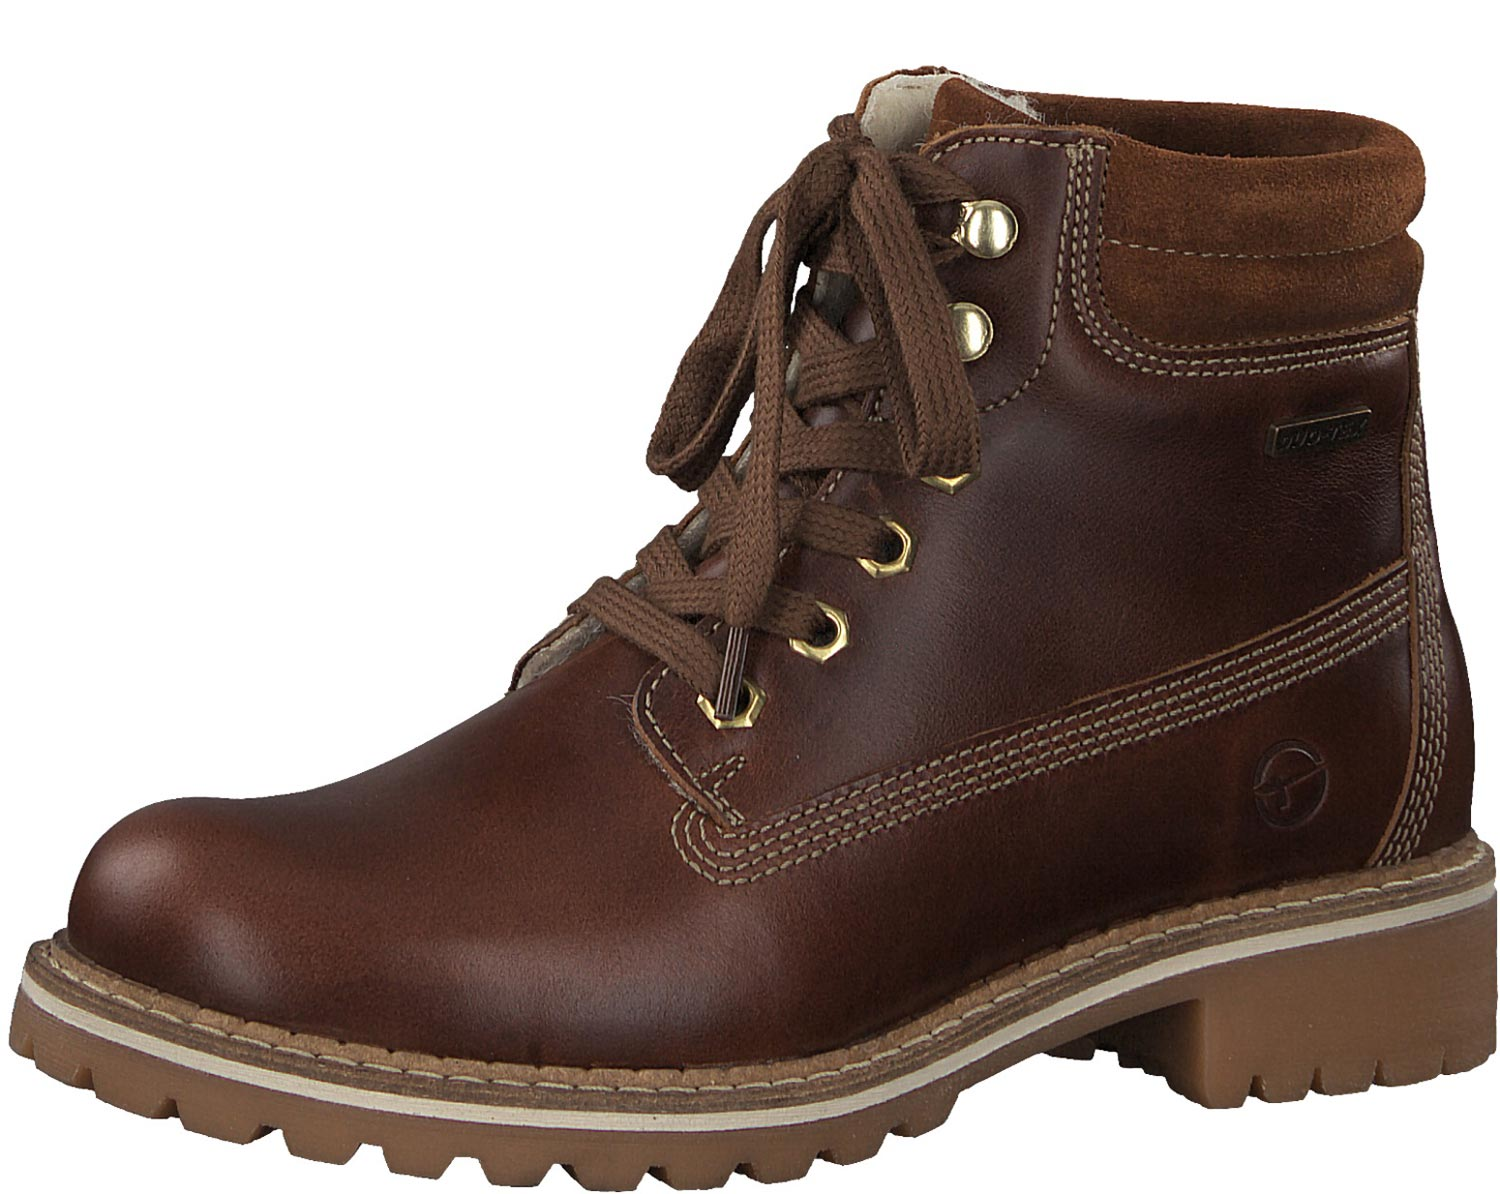 Tamaris Women's Boots Ankle Boots Winter 26244-21 359 Brown New